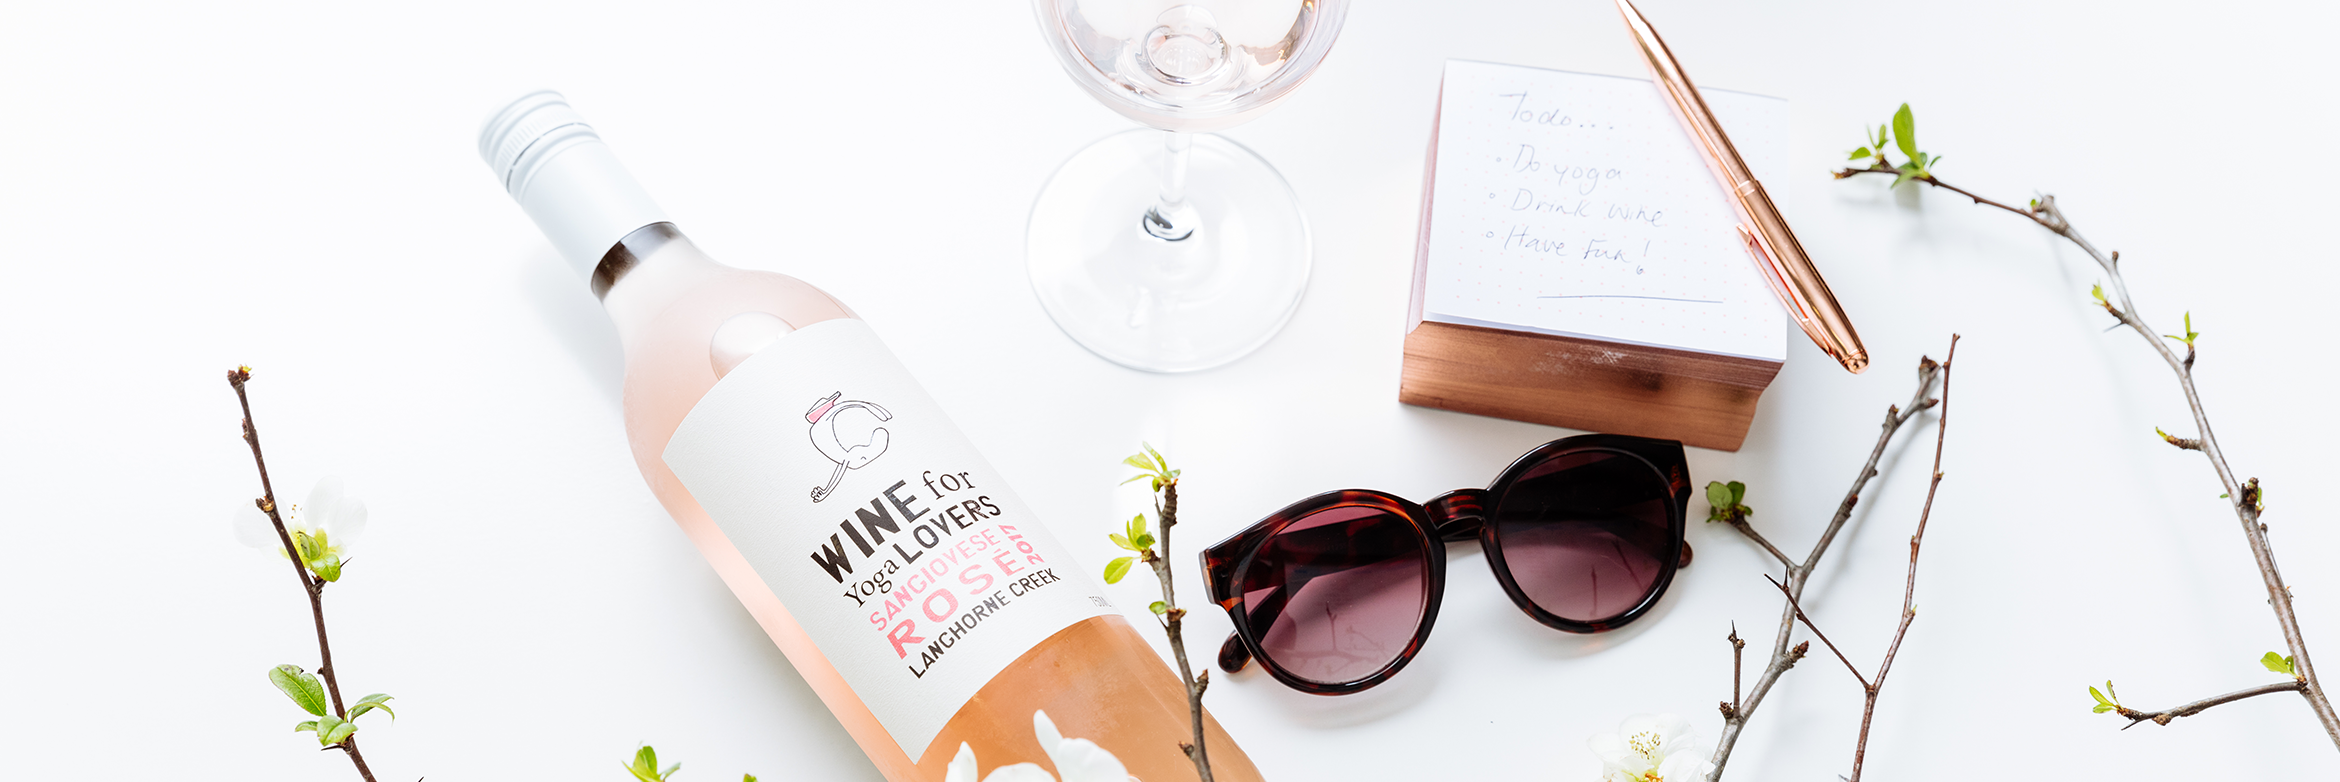 Wine for Yoga Lovers rose